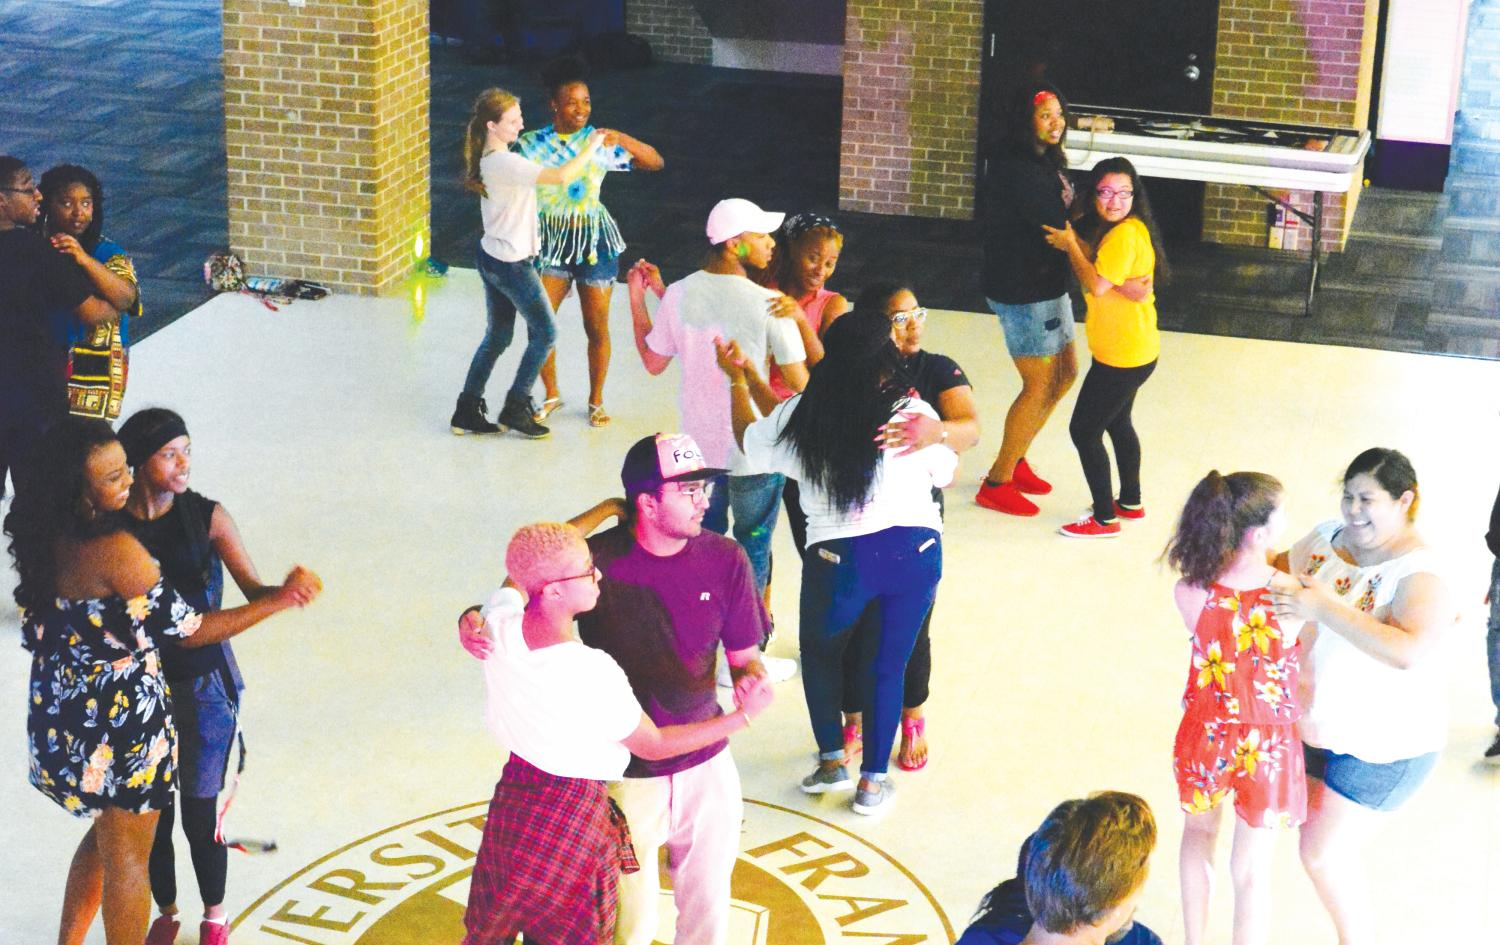 Students learn to salsa dance during the Salsa Magic event to celebrate Hispanic Heritage Month.